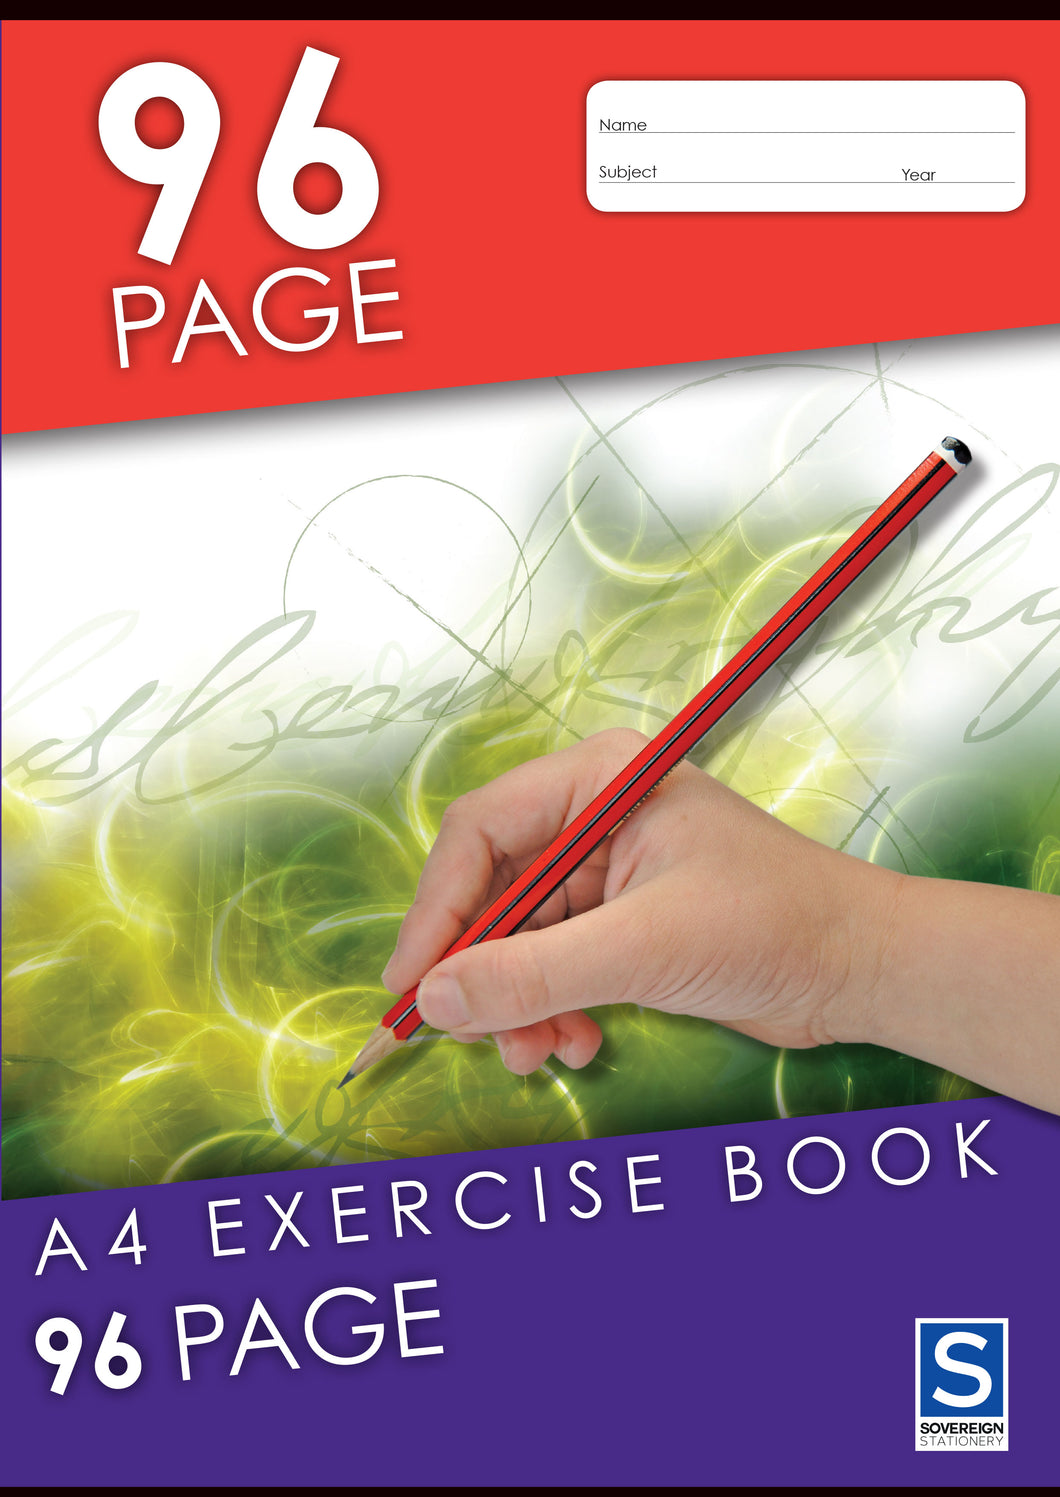 A4 Exercise Book - 96 Page - with Red Margin